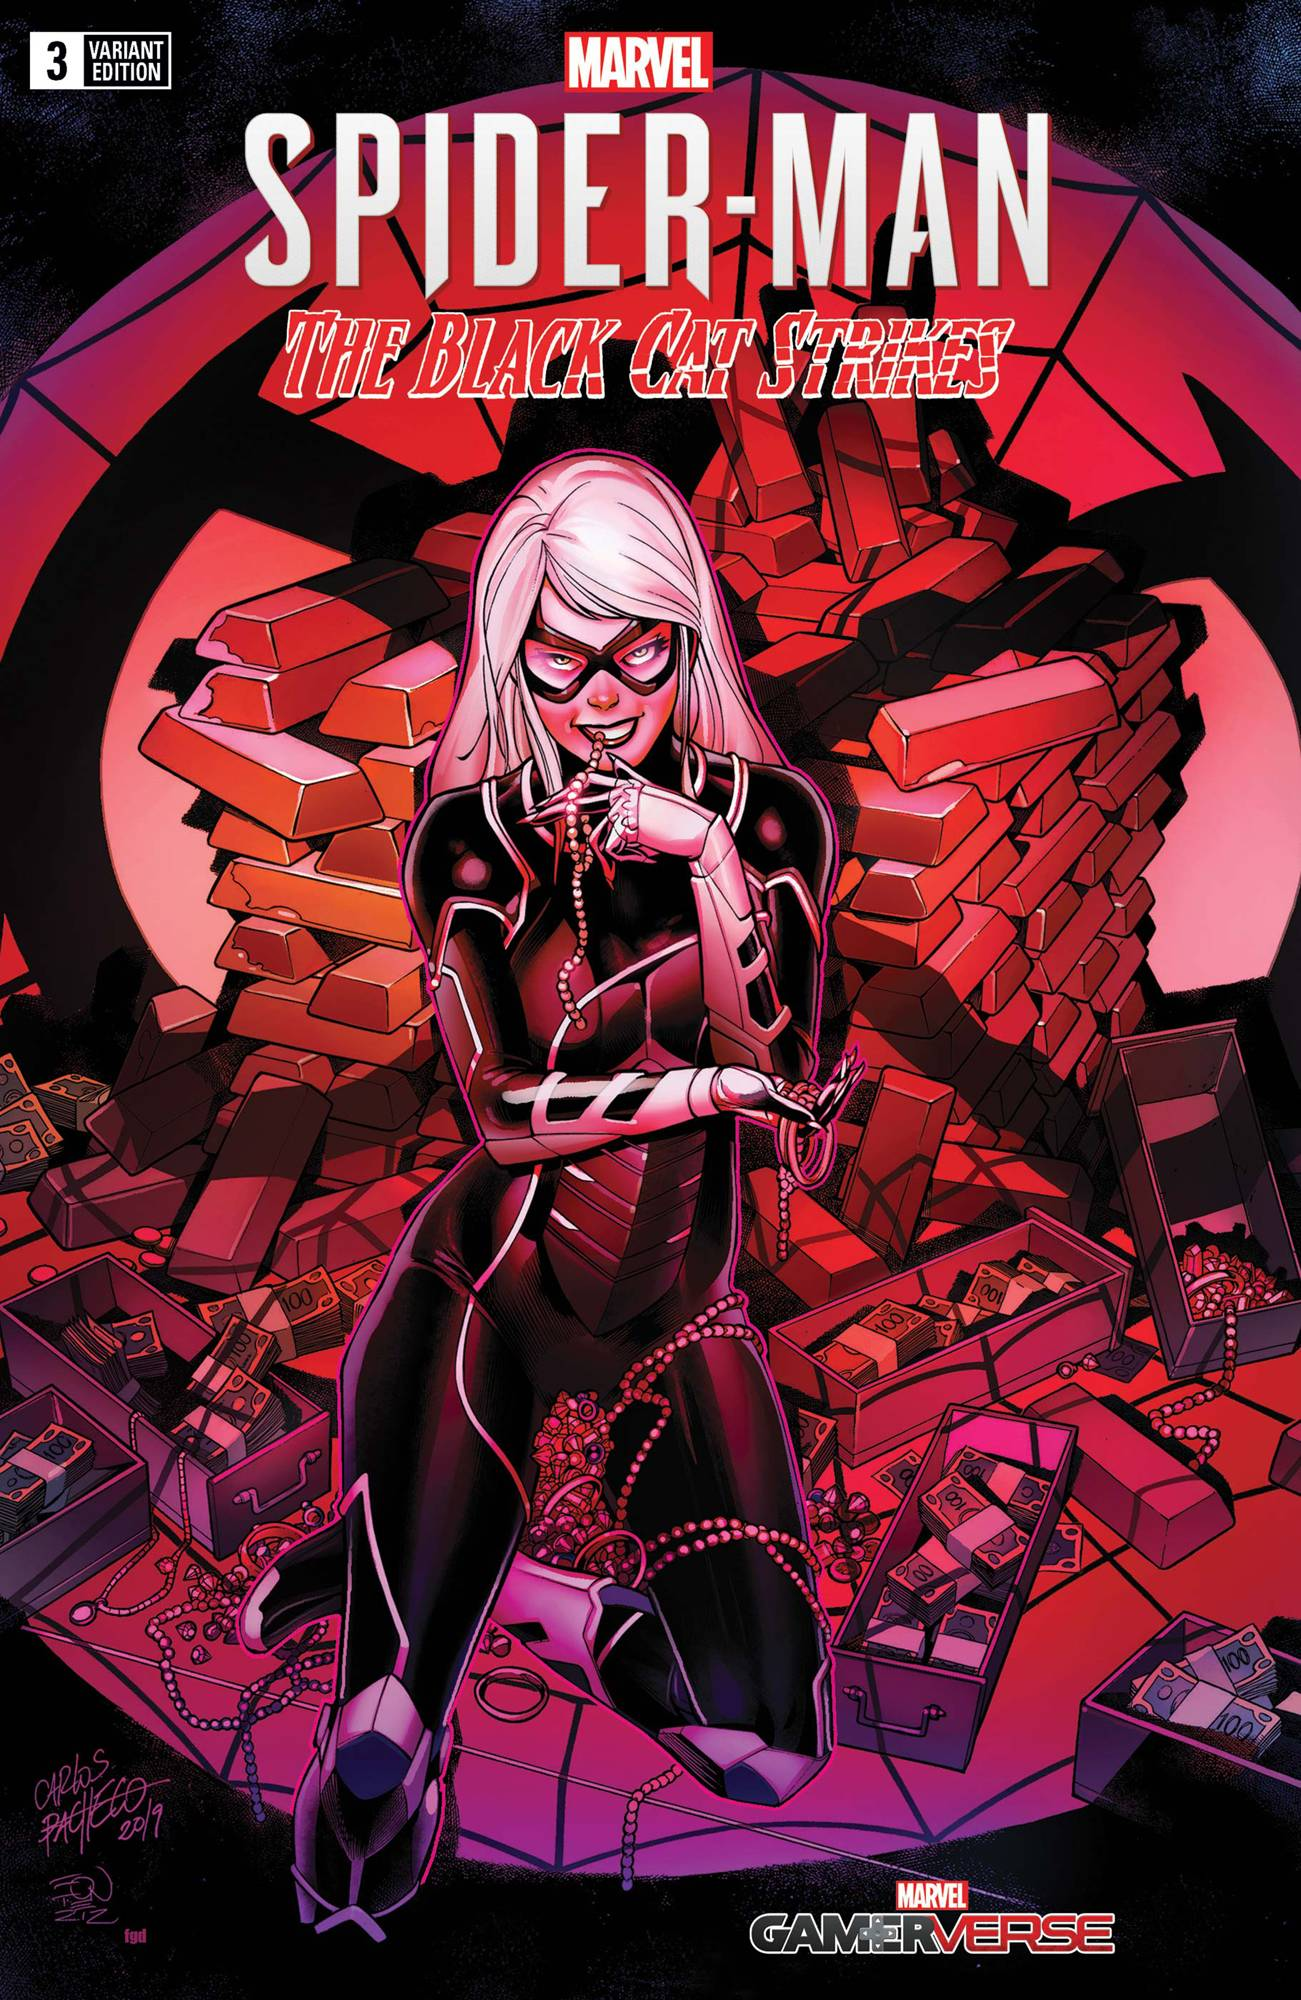 MARVELS SPIDER-MAN BLACK CAT STRIKES #3 (OF 5) PACHECO VAR